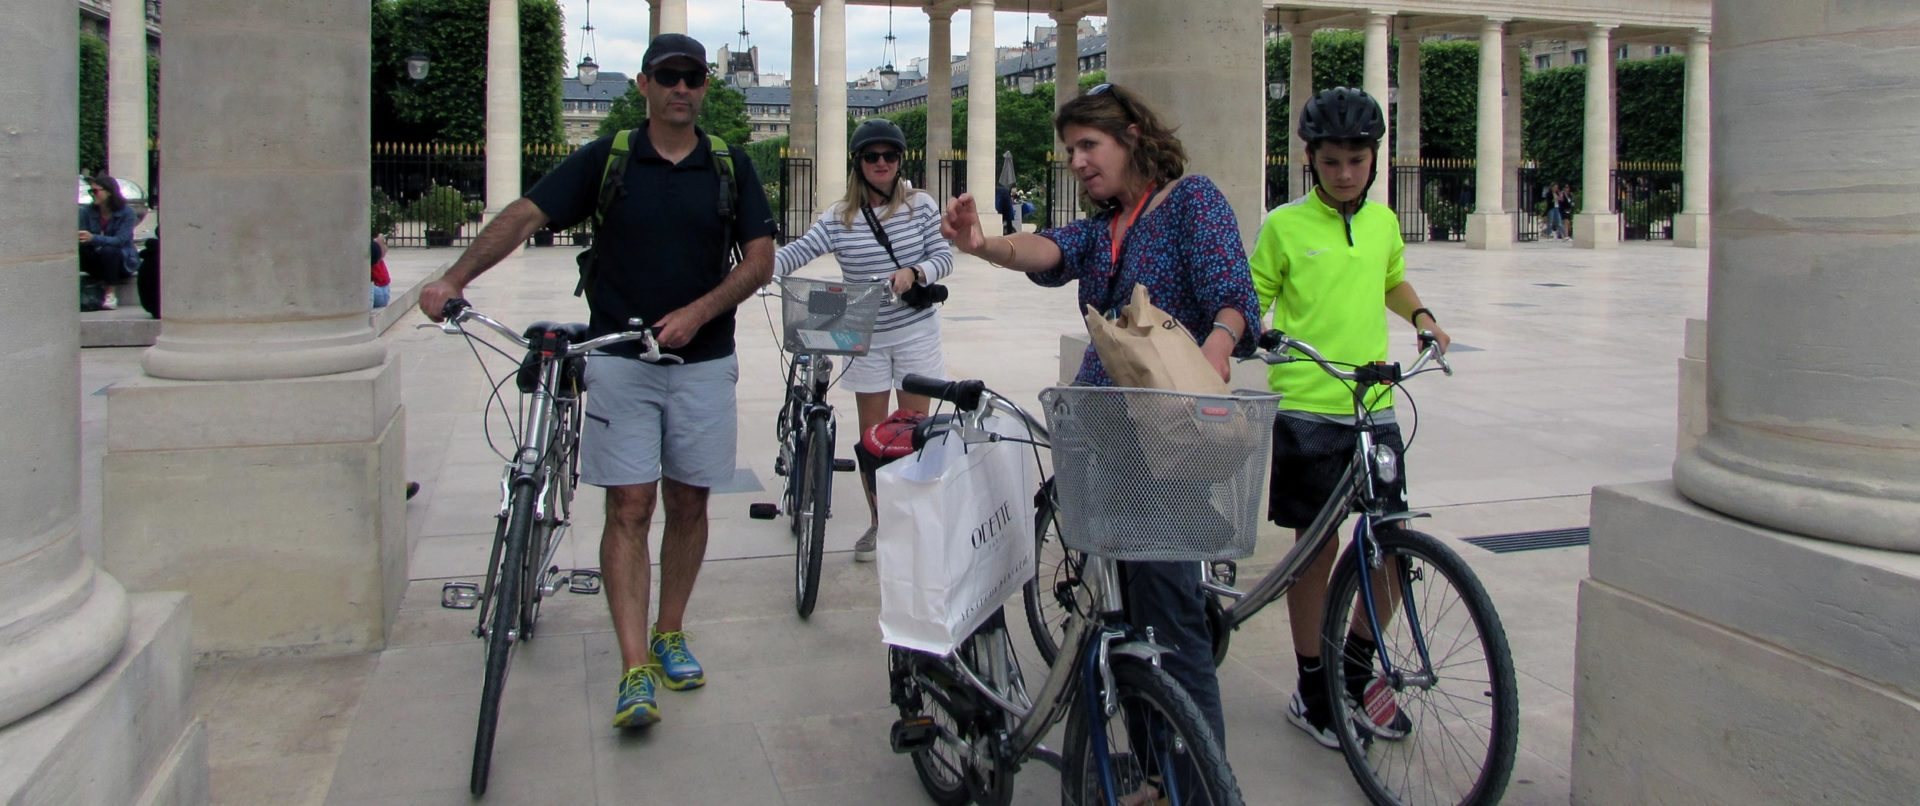 paris-bike-tour-private-family-experience